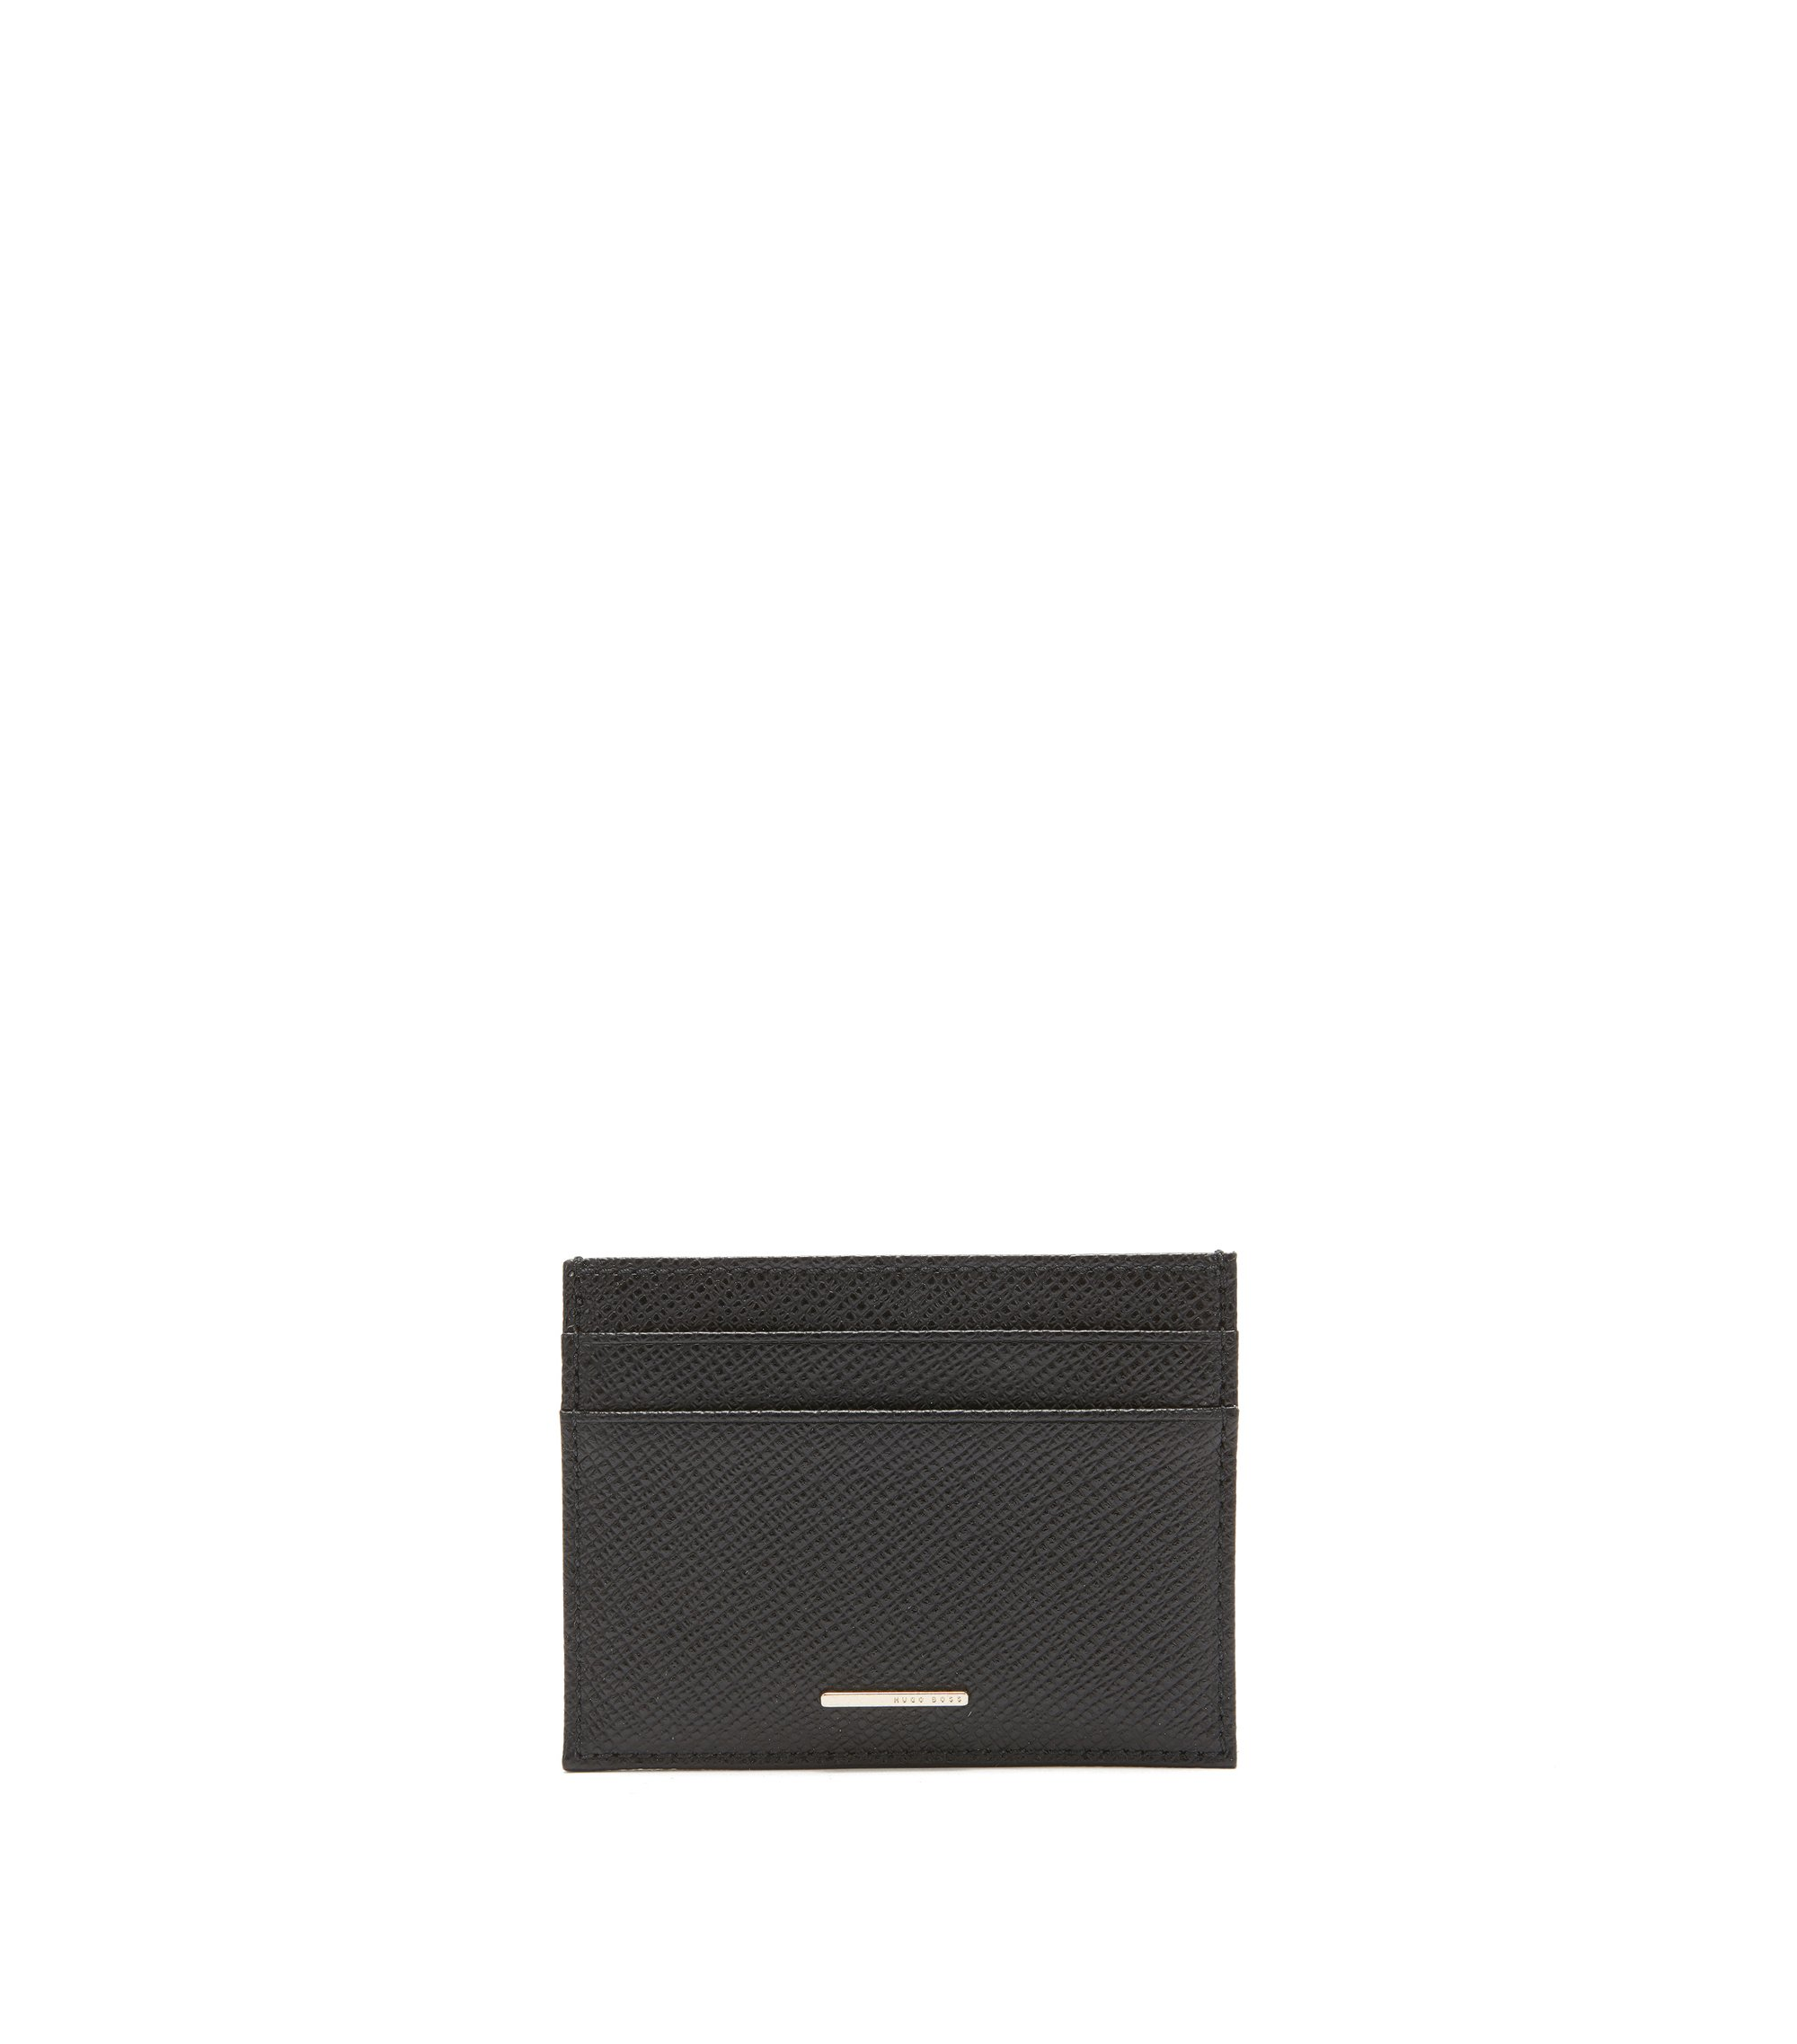 BOSS Luxury Staple card holder in leather, Black